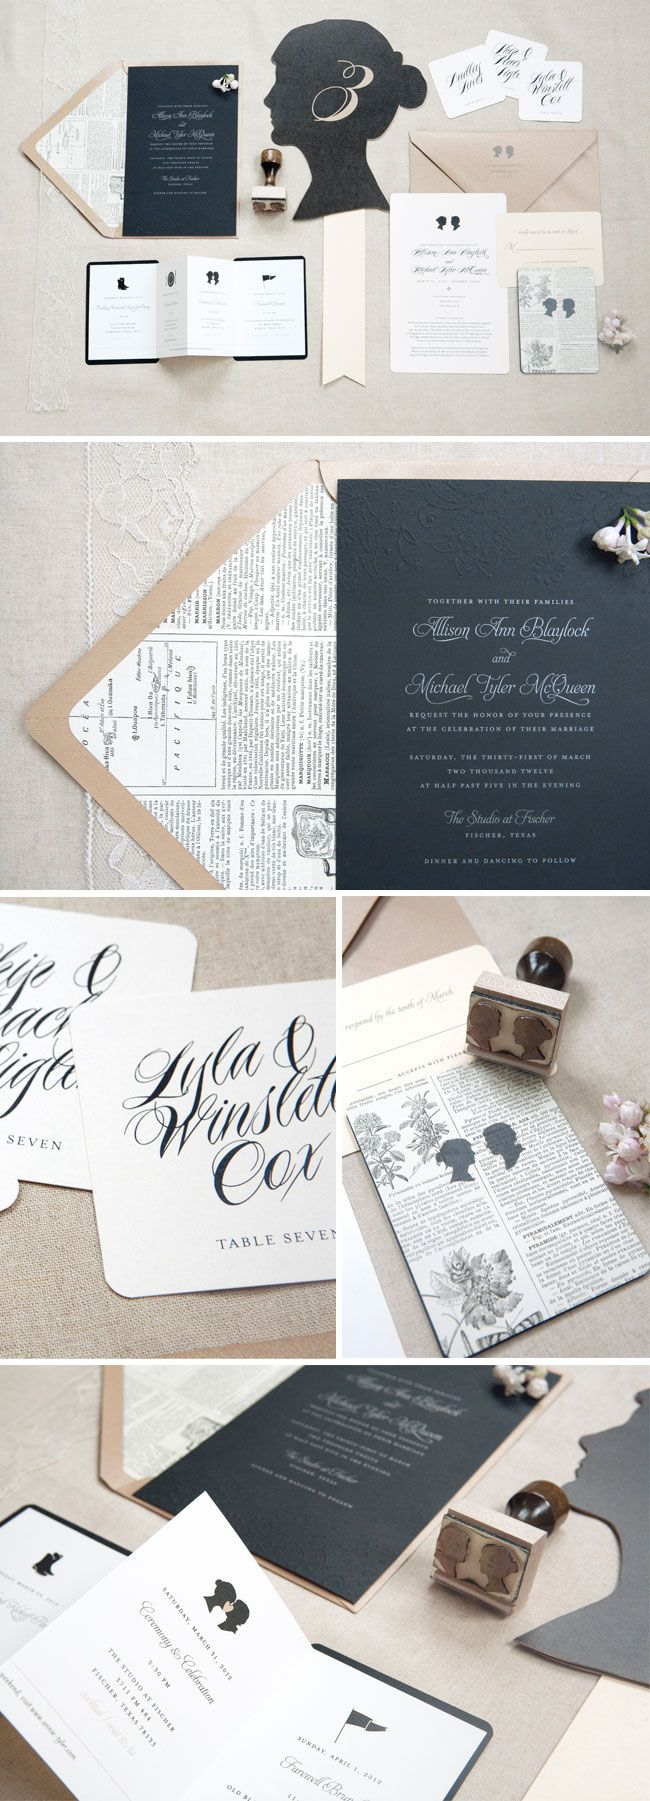 Vintage Parisian-meets-glam wedding suite with silhouettes || Lilly & Louise